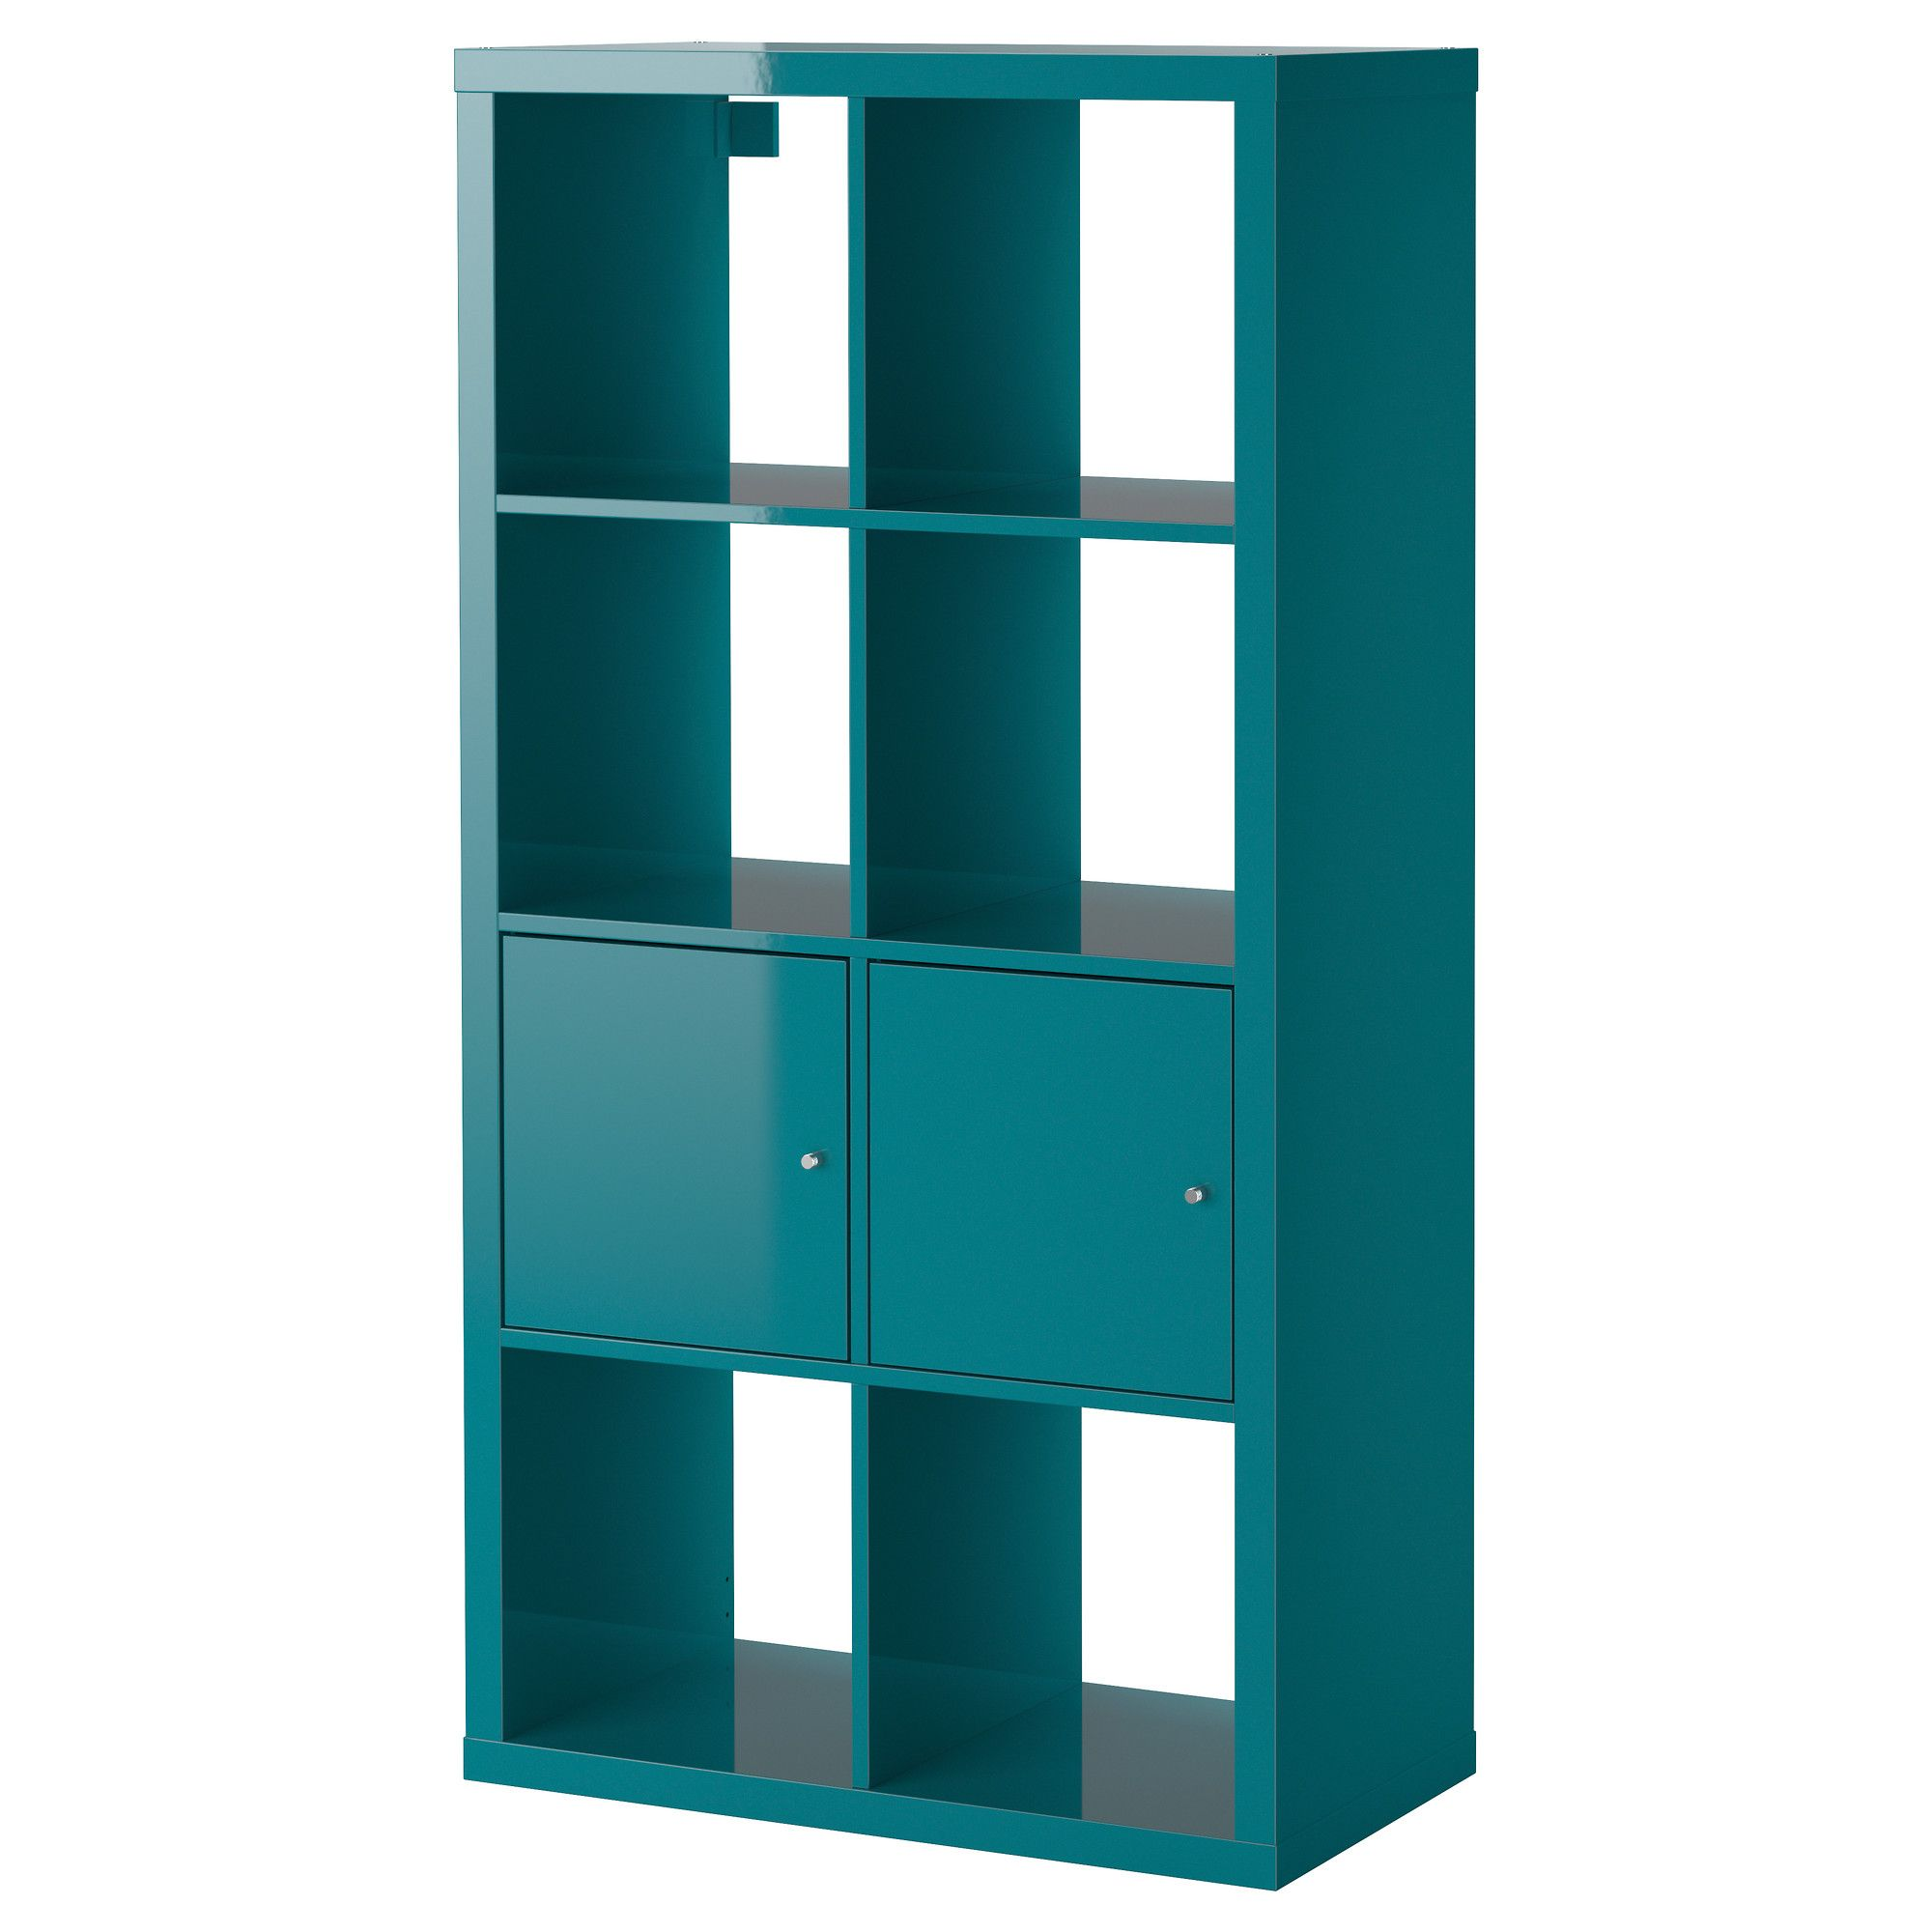 KALLAX Shelving unit with doors - IKEA | Play Room | Pinterest ...